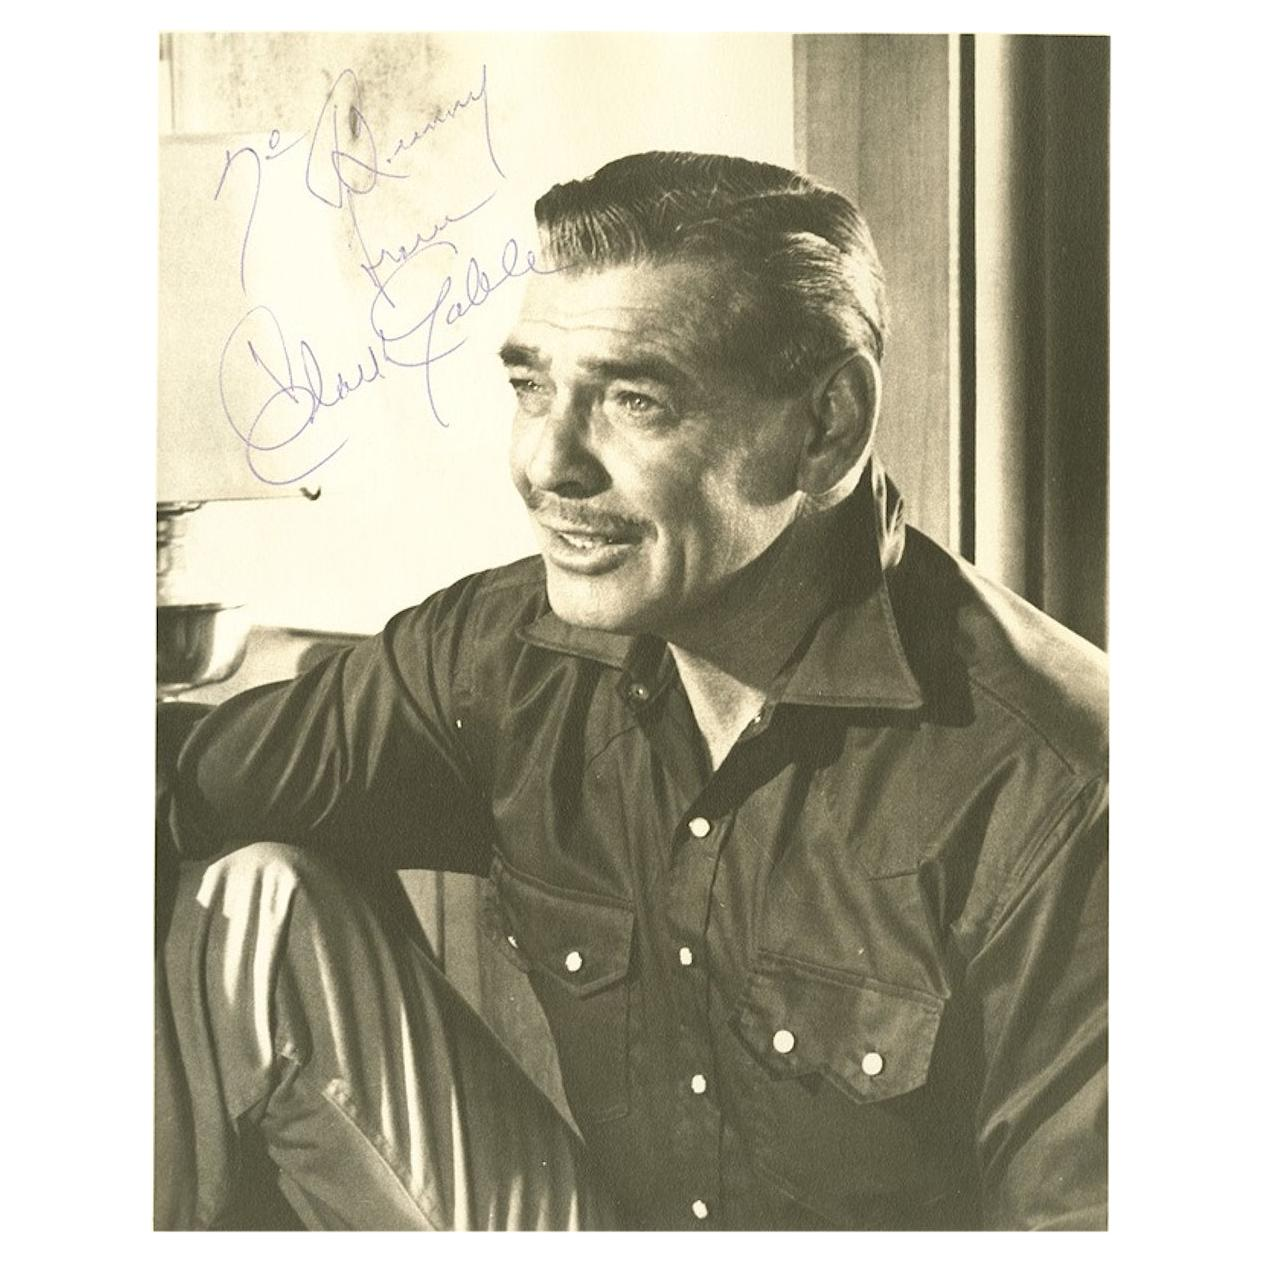 Clark Gable Signed Photograph Black and White circa 1930s / 1940s